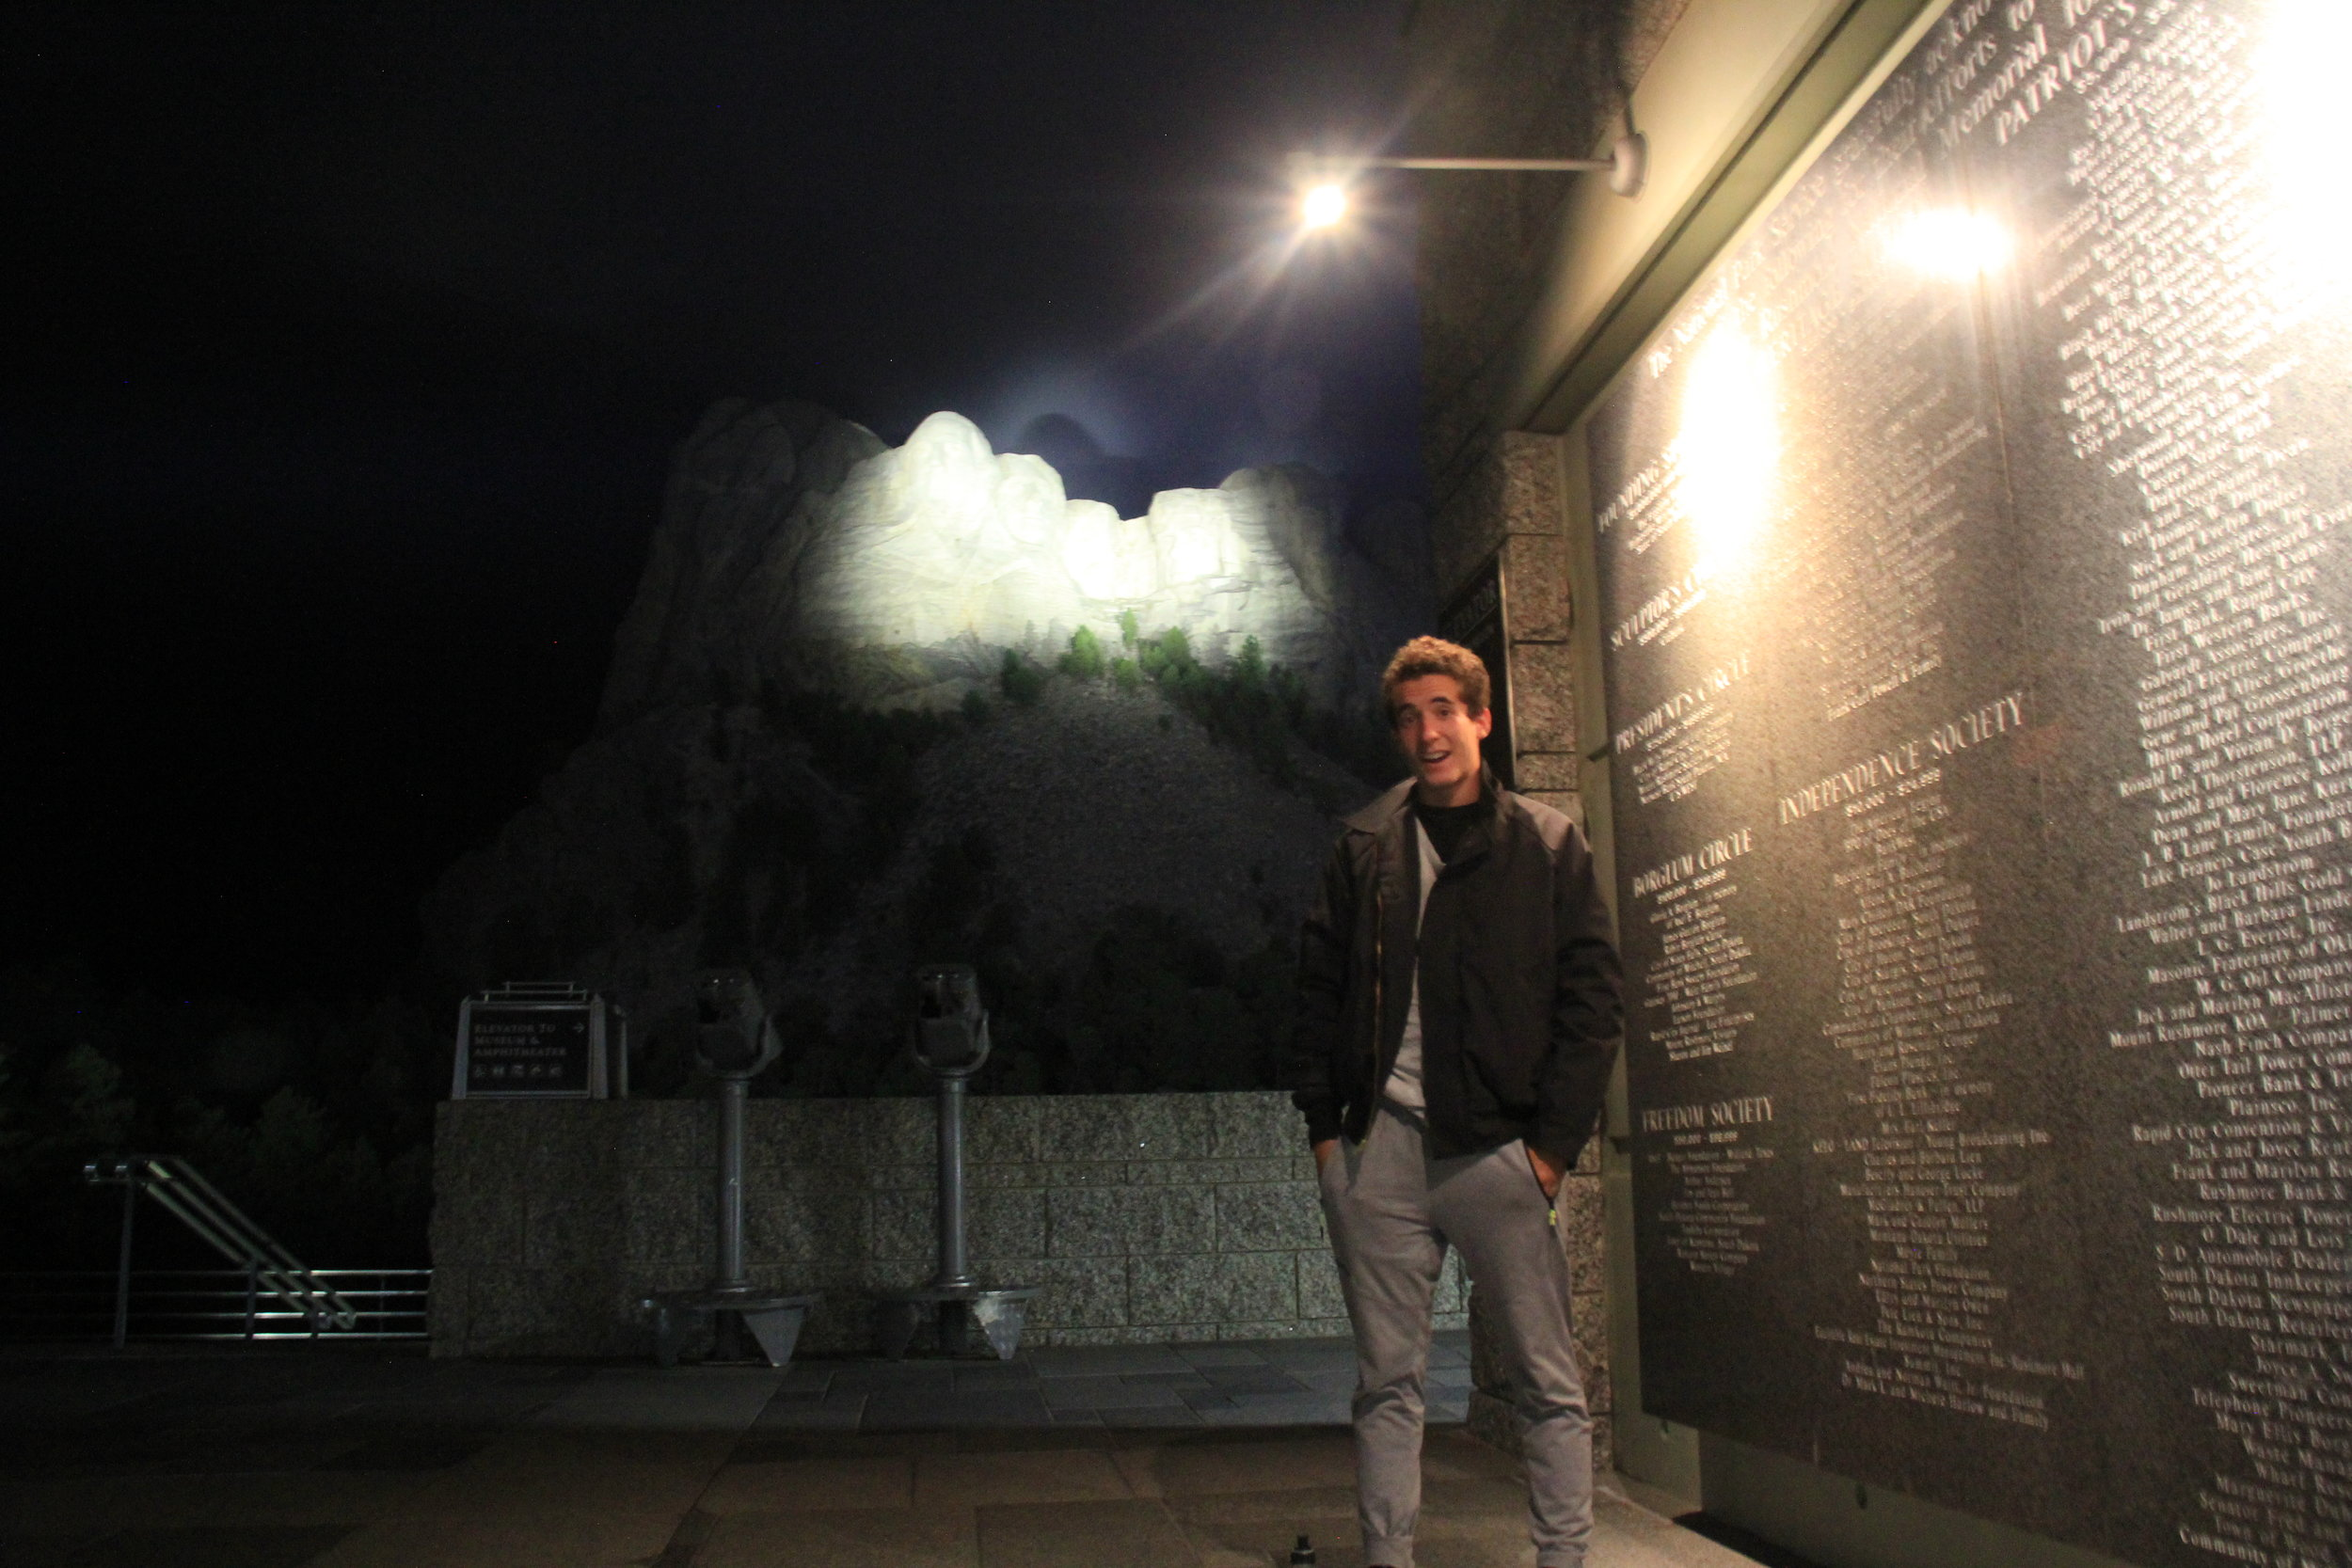 I thought Mt. Rushmore would be boring at midnight, but it was anything but. No tourists, just me, Drew and the four presidents.